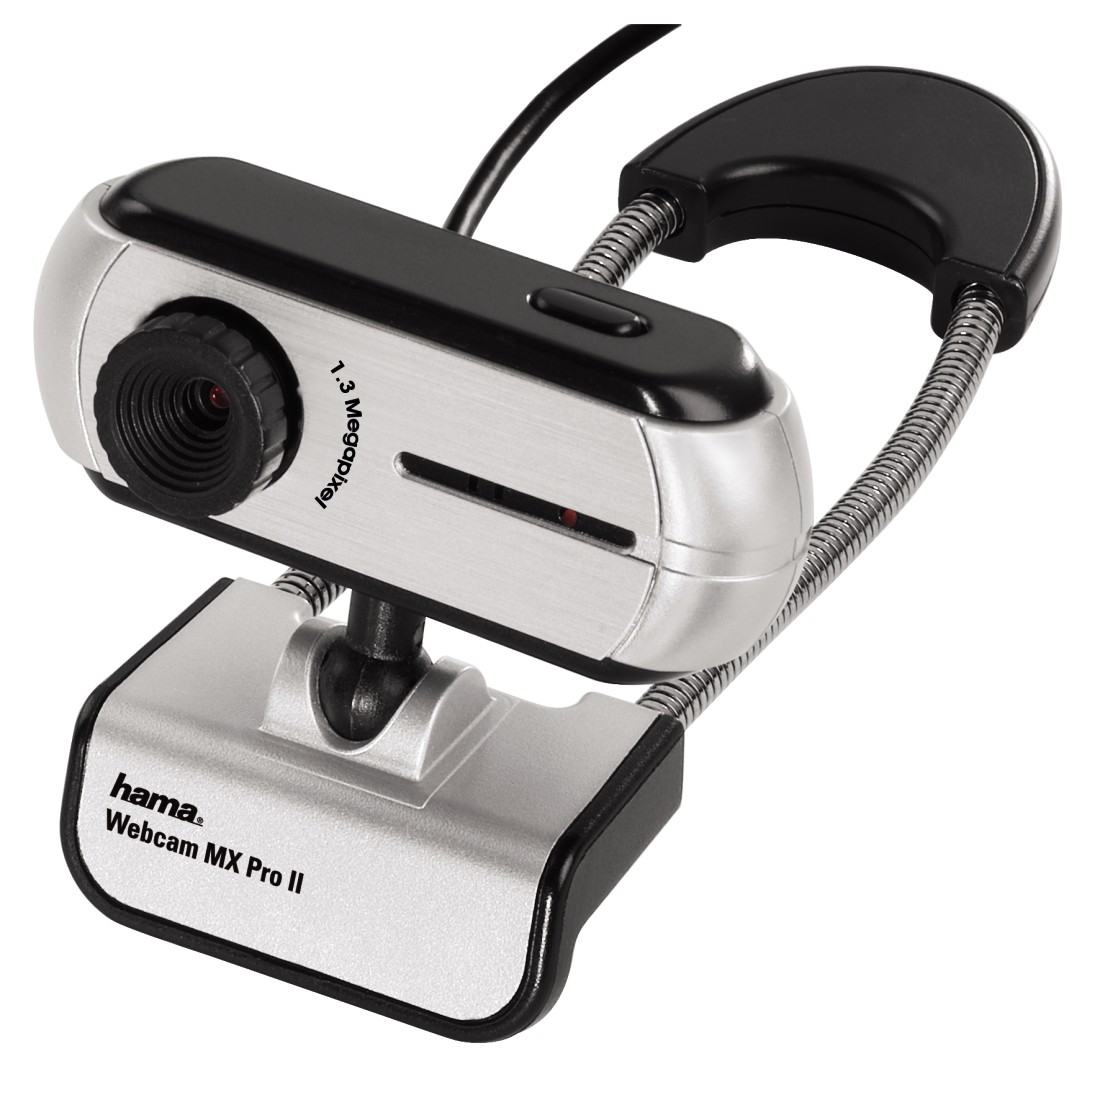 What is the best camera for live streaming photo